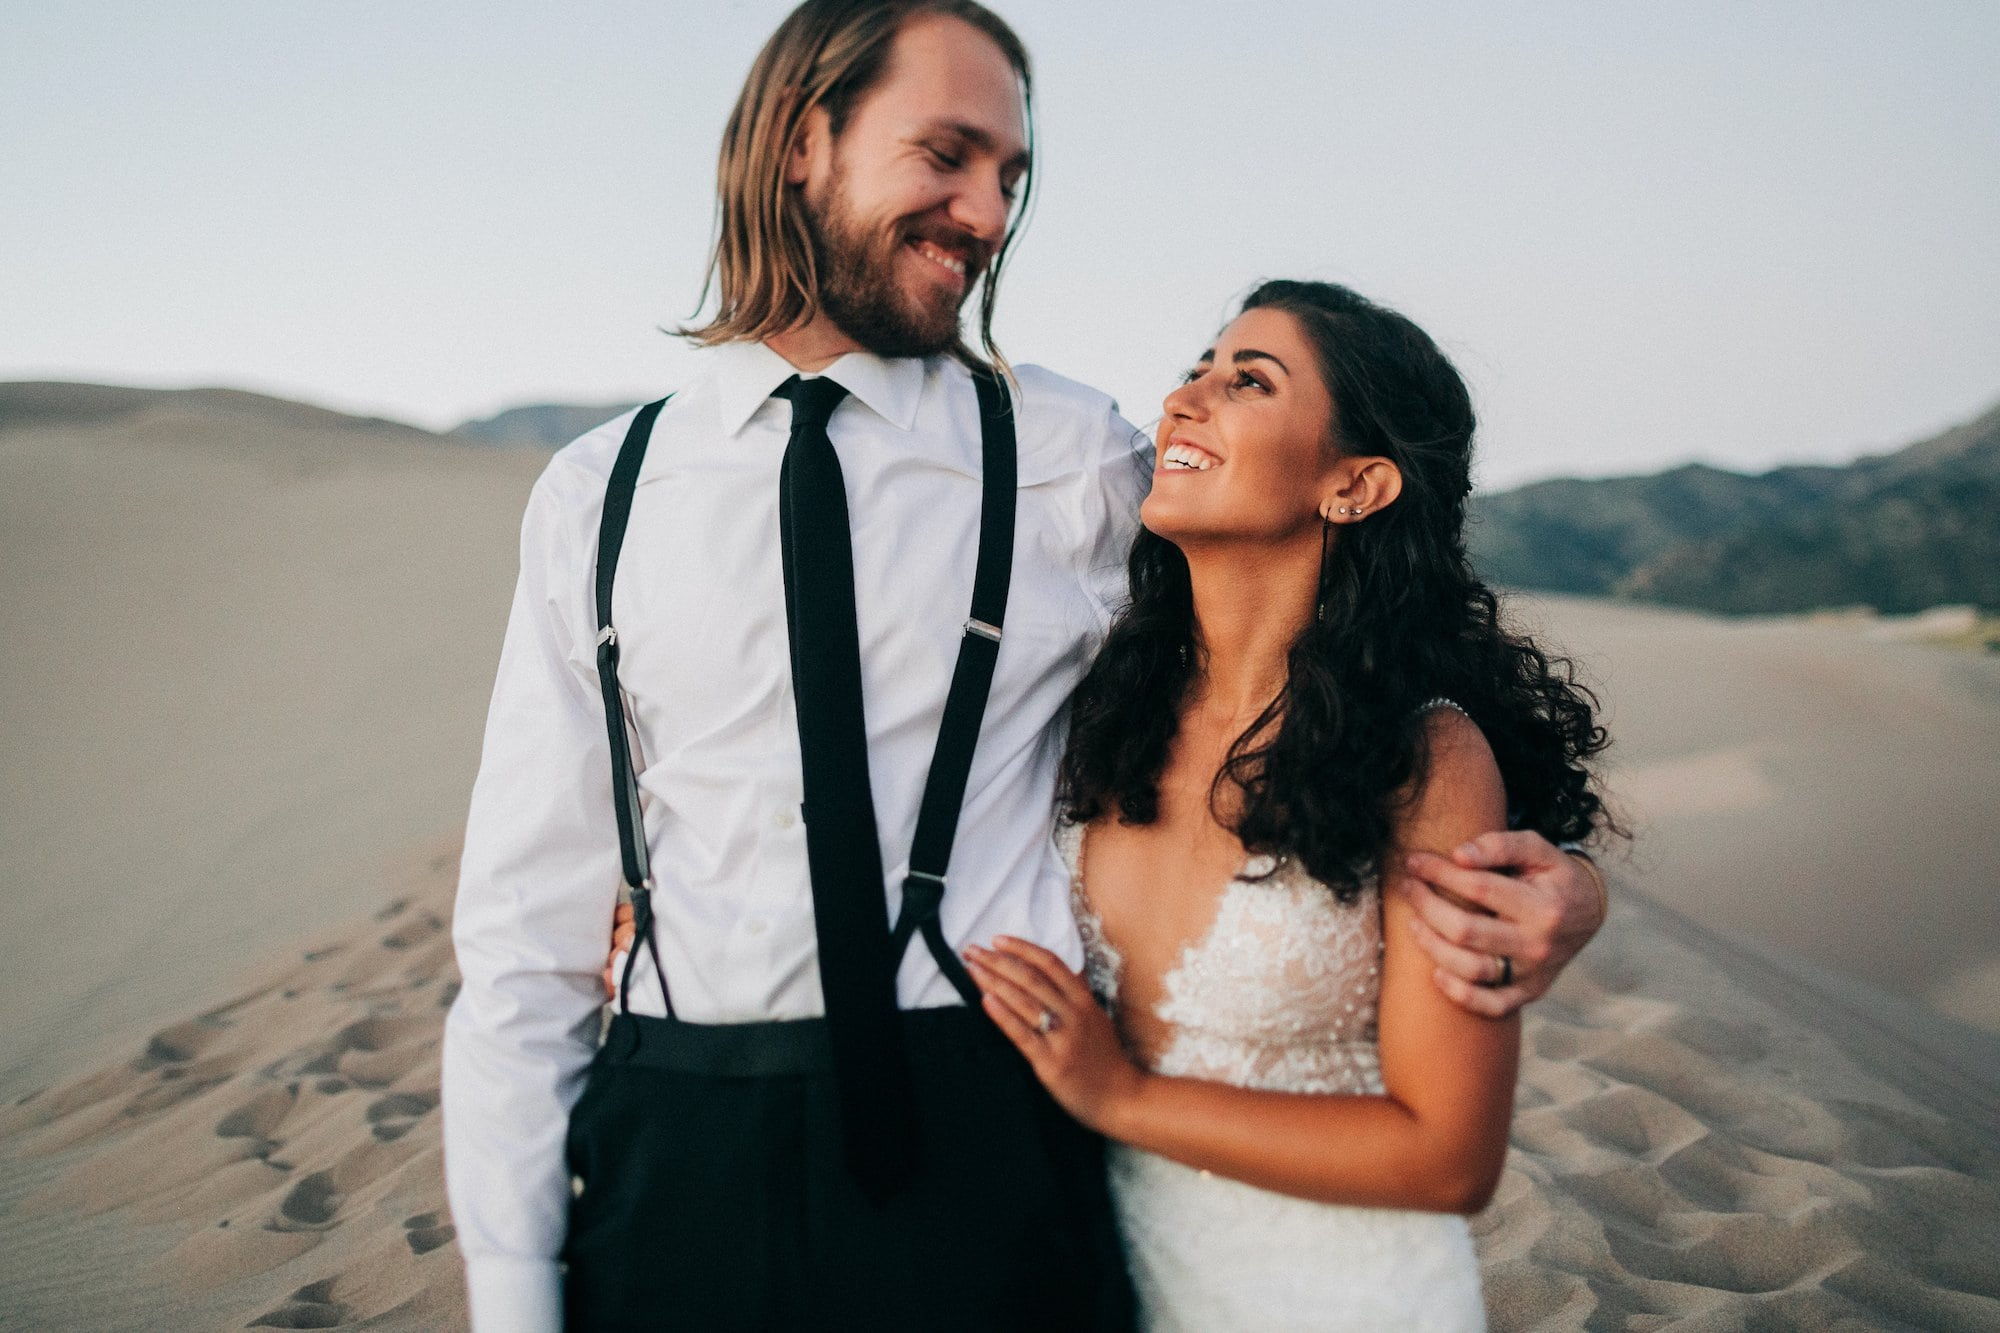 How to Elope podcast hosts